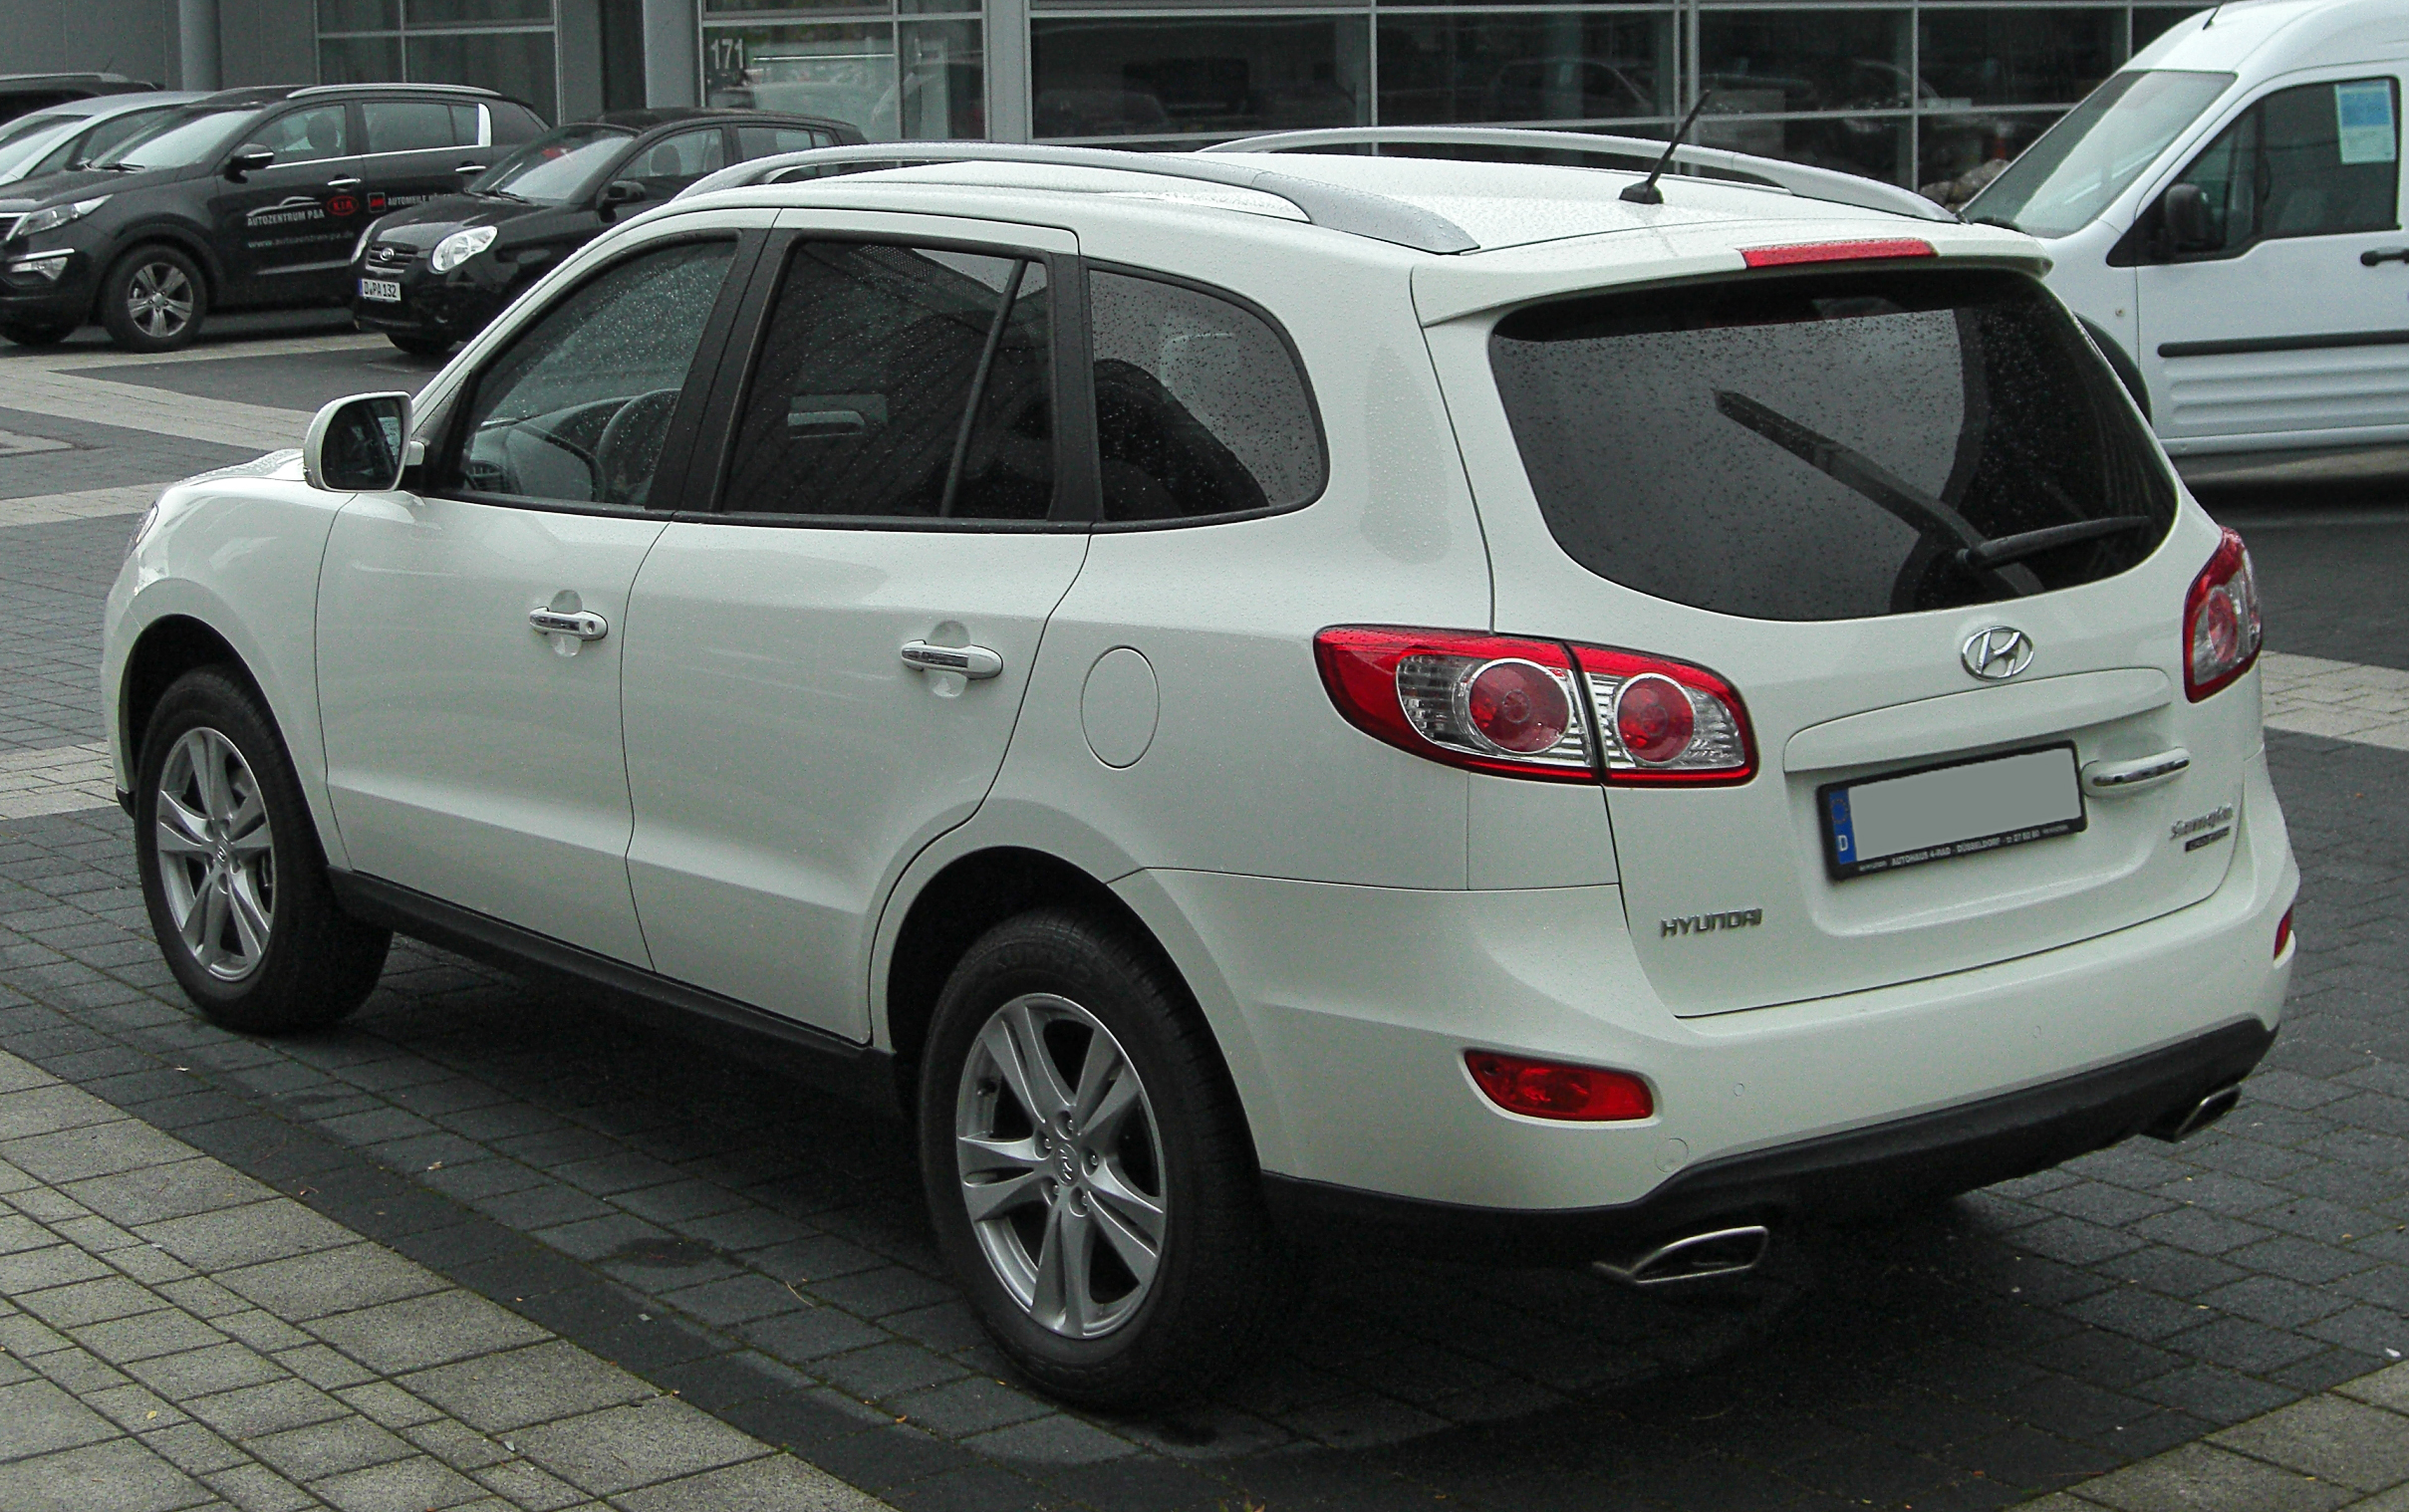 File:Hyundai Sante Fe II Facelift Rear 20101030